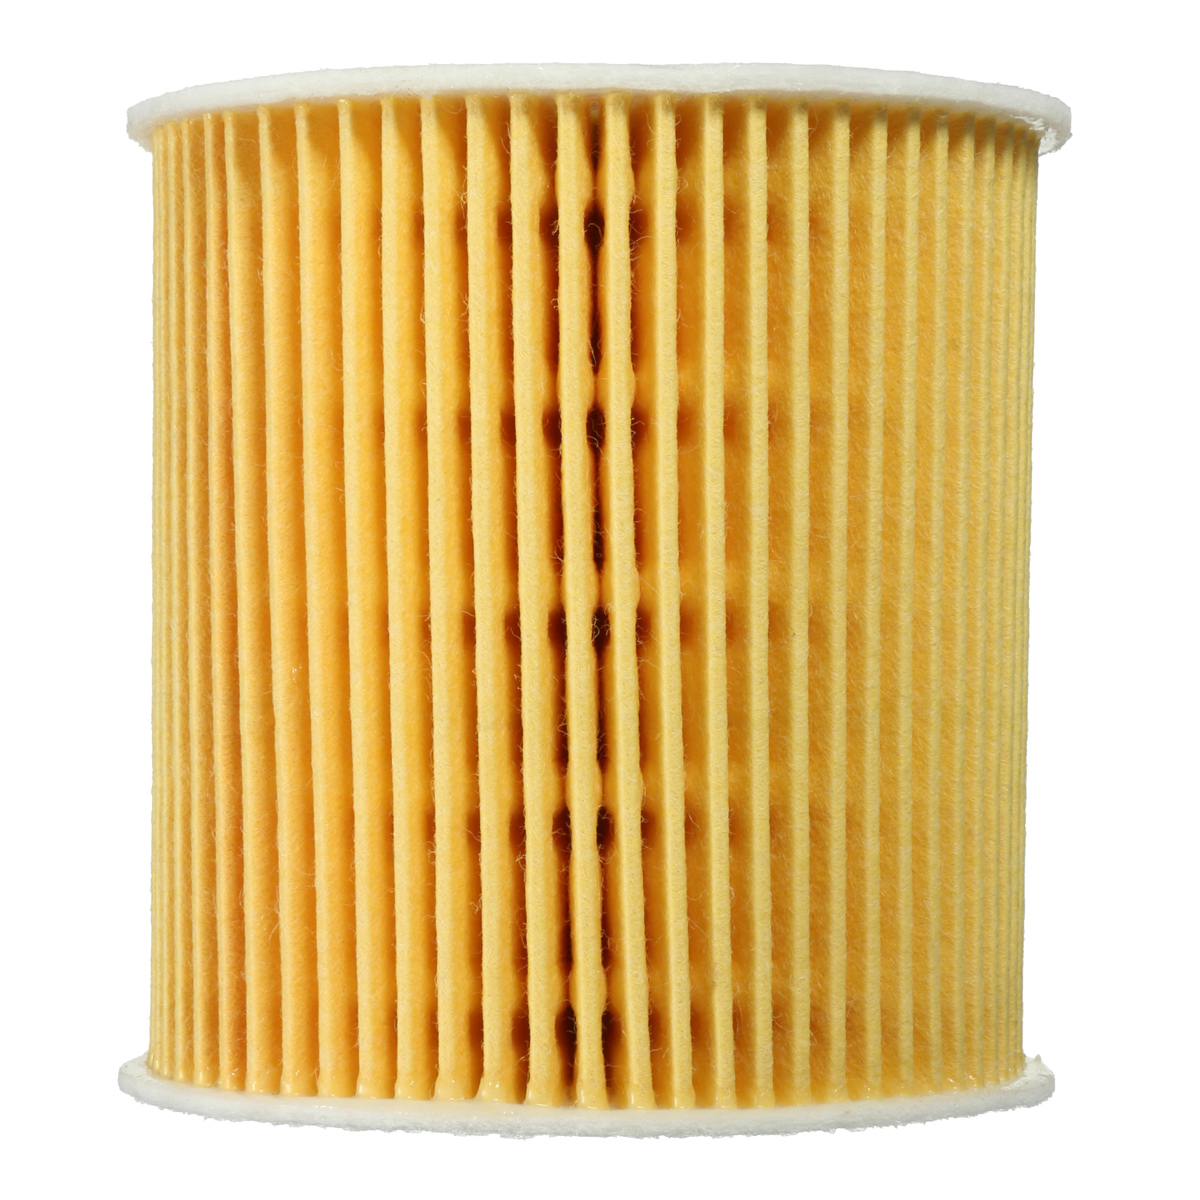 Buy Generic Volvo Xc70 Xc 90 V70 V40 S80 S70 S60 S40 C70 Mann Oil Fuel Filter For 1275810